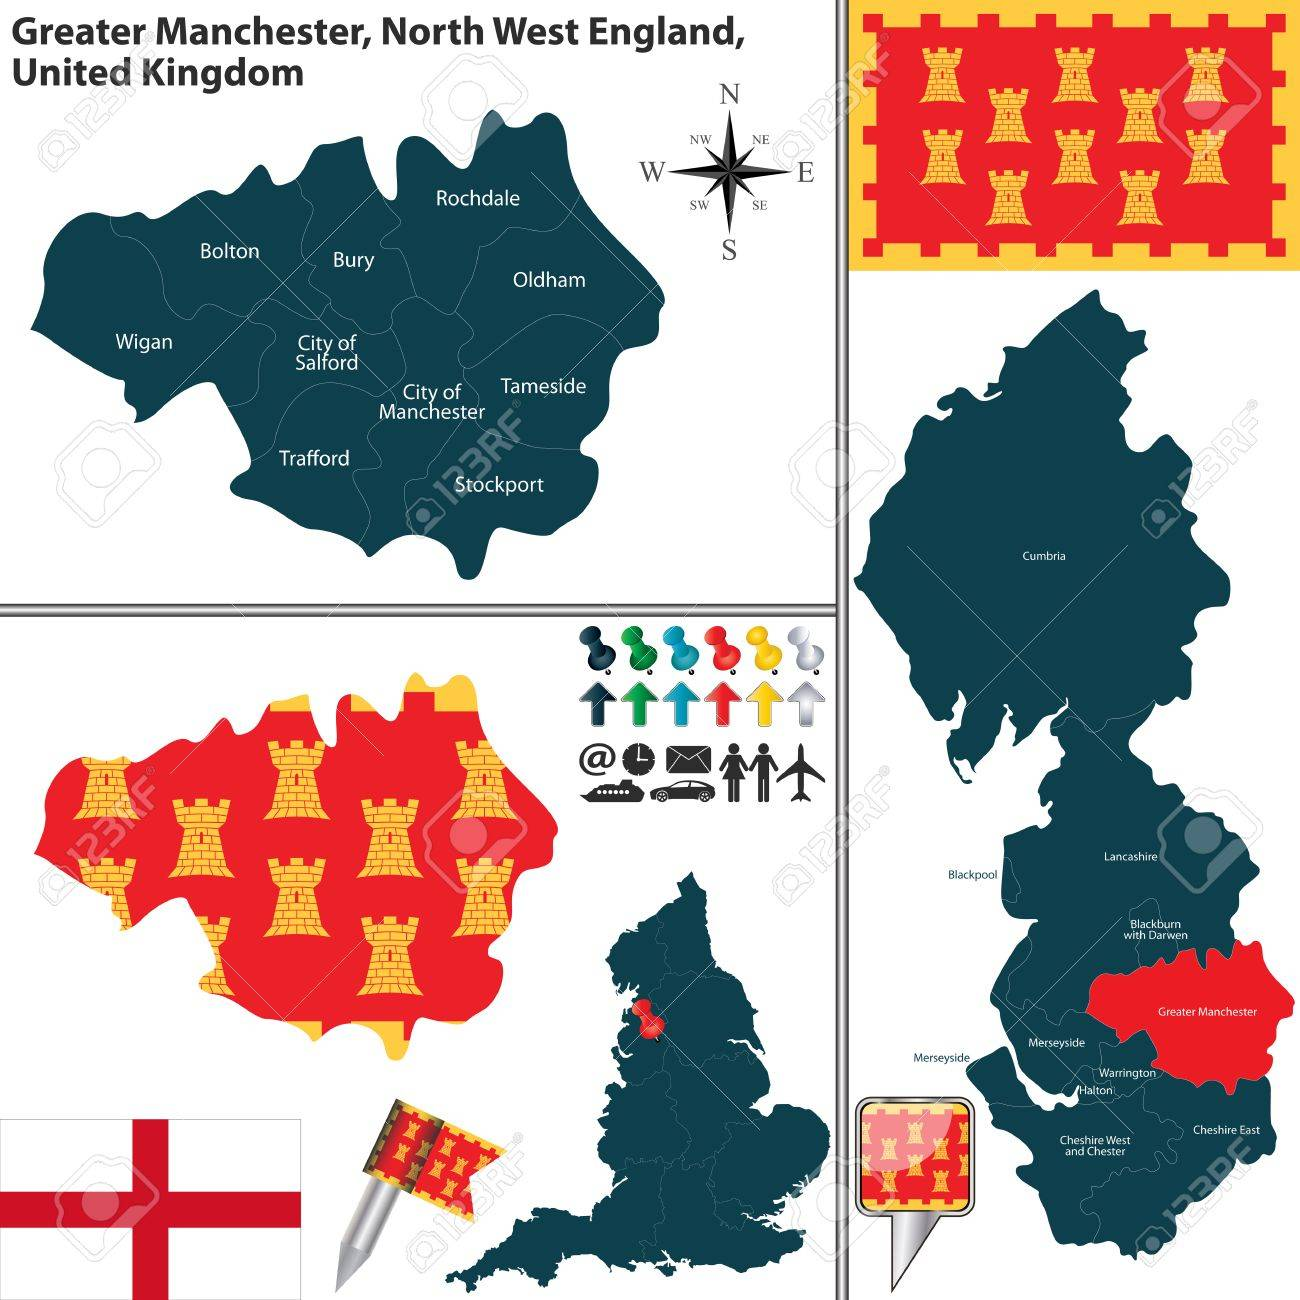 Map Of England Manchester.Vector Map Of Greater Manchester In North West England United